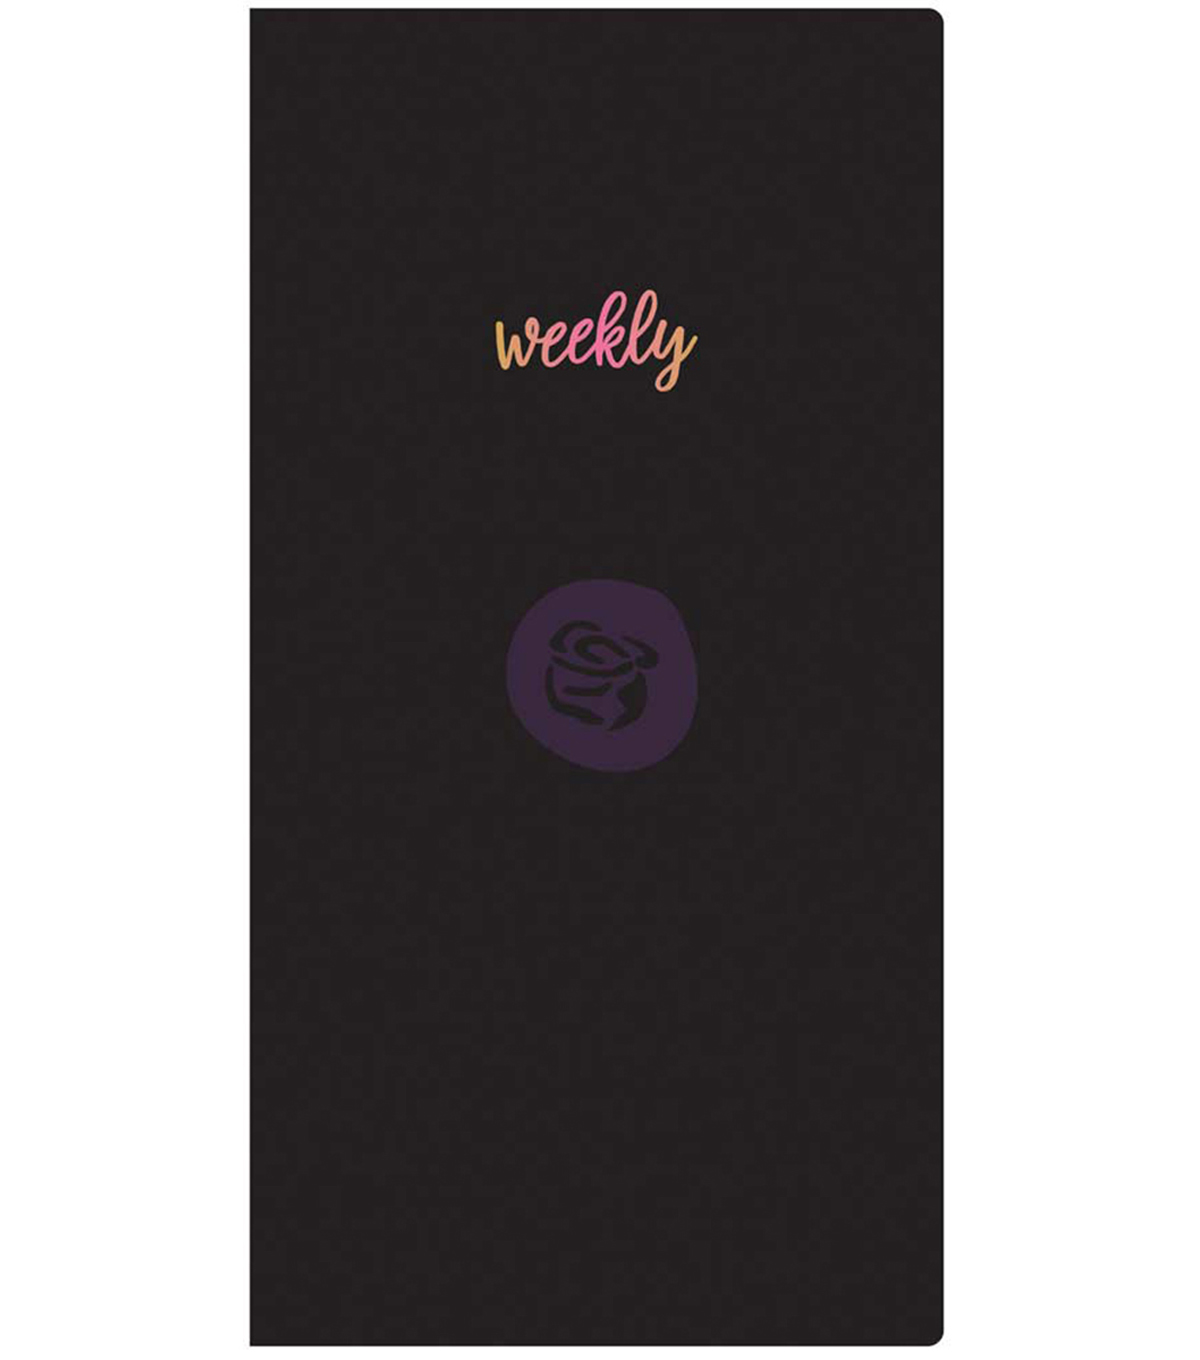 Traveler's Journal Notebook Refill 32 Sheets-Weekly w/White Paper